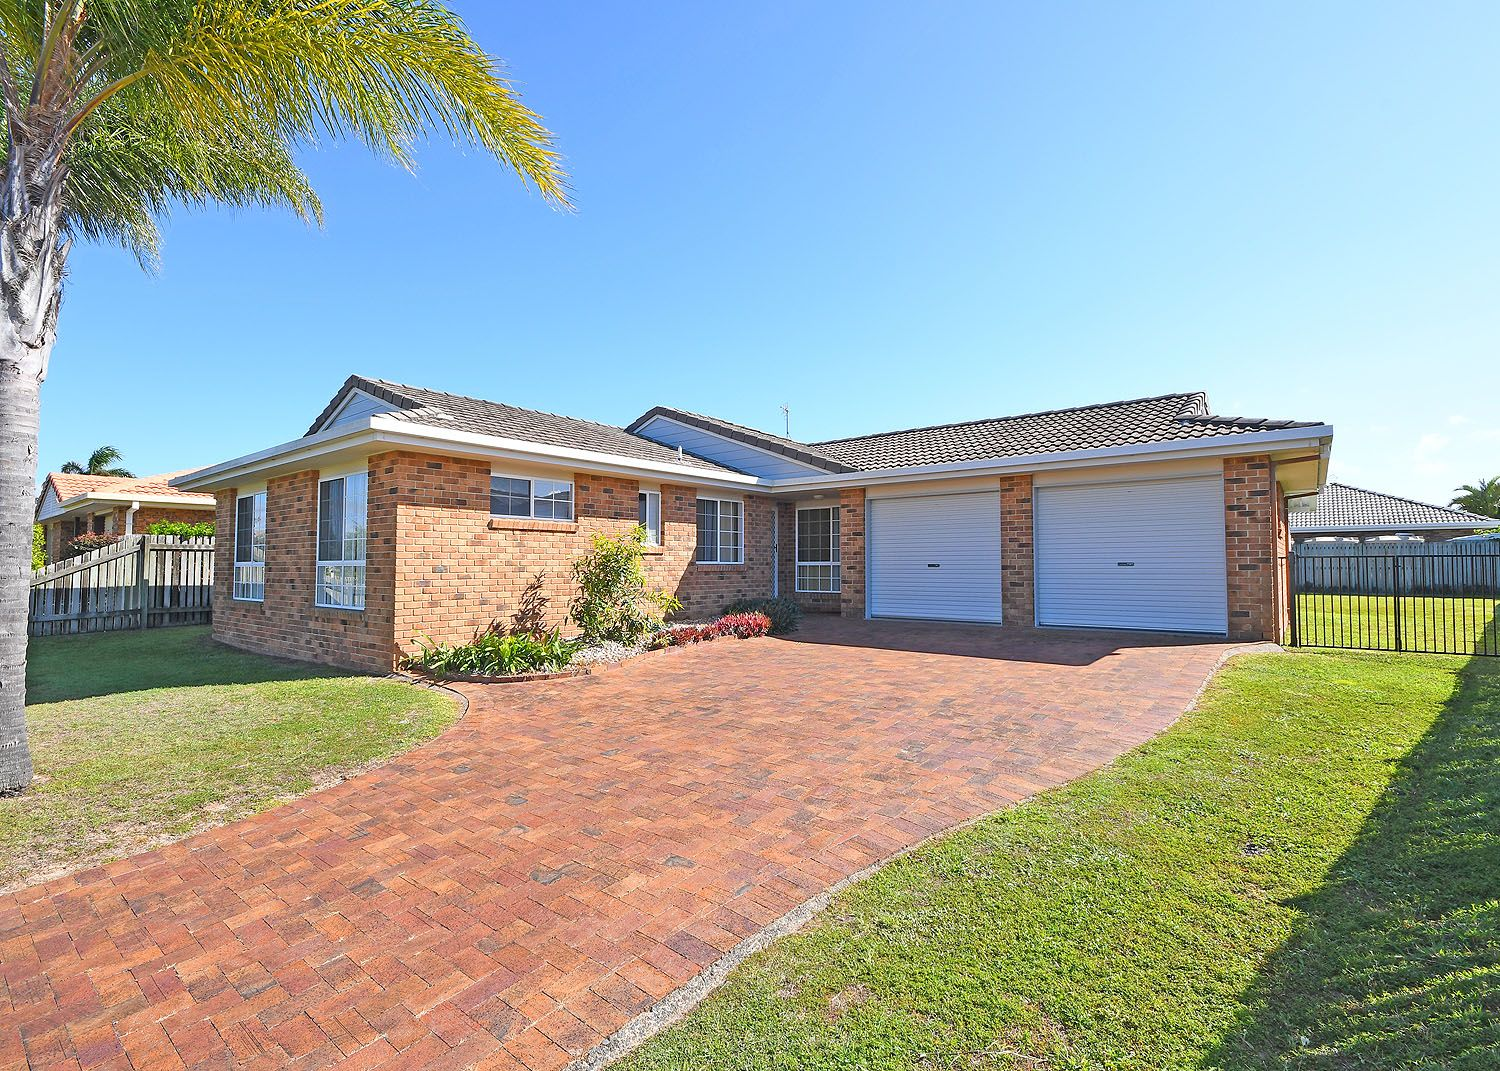 9 Musgrave Close, Kawungan QLD 4655, Image 0